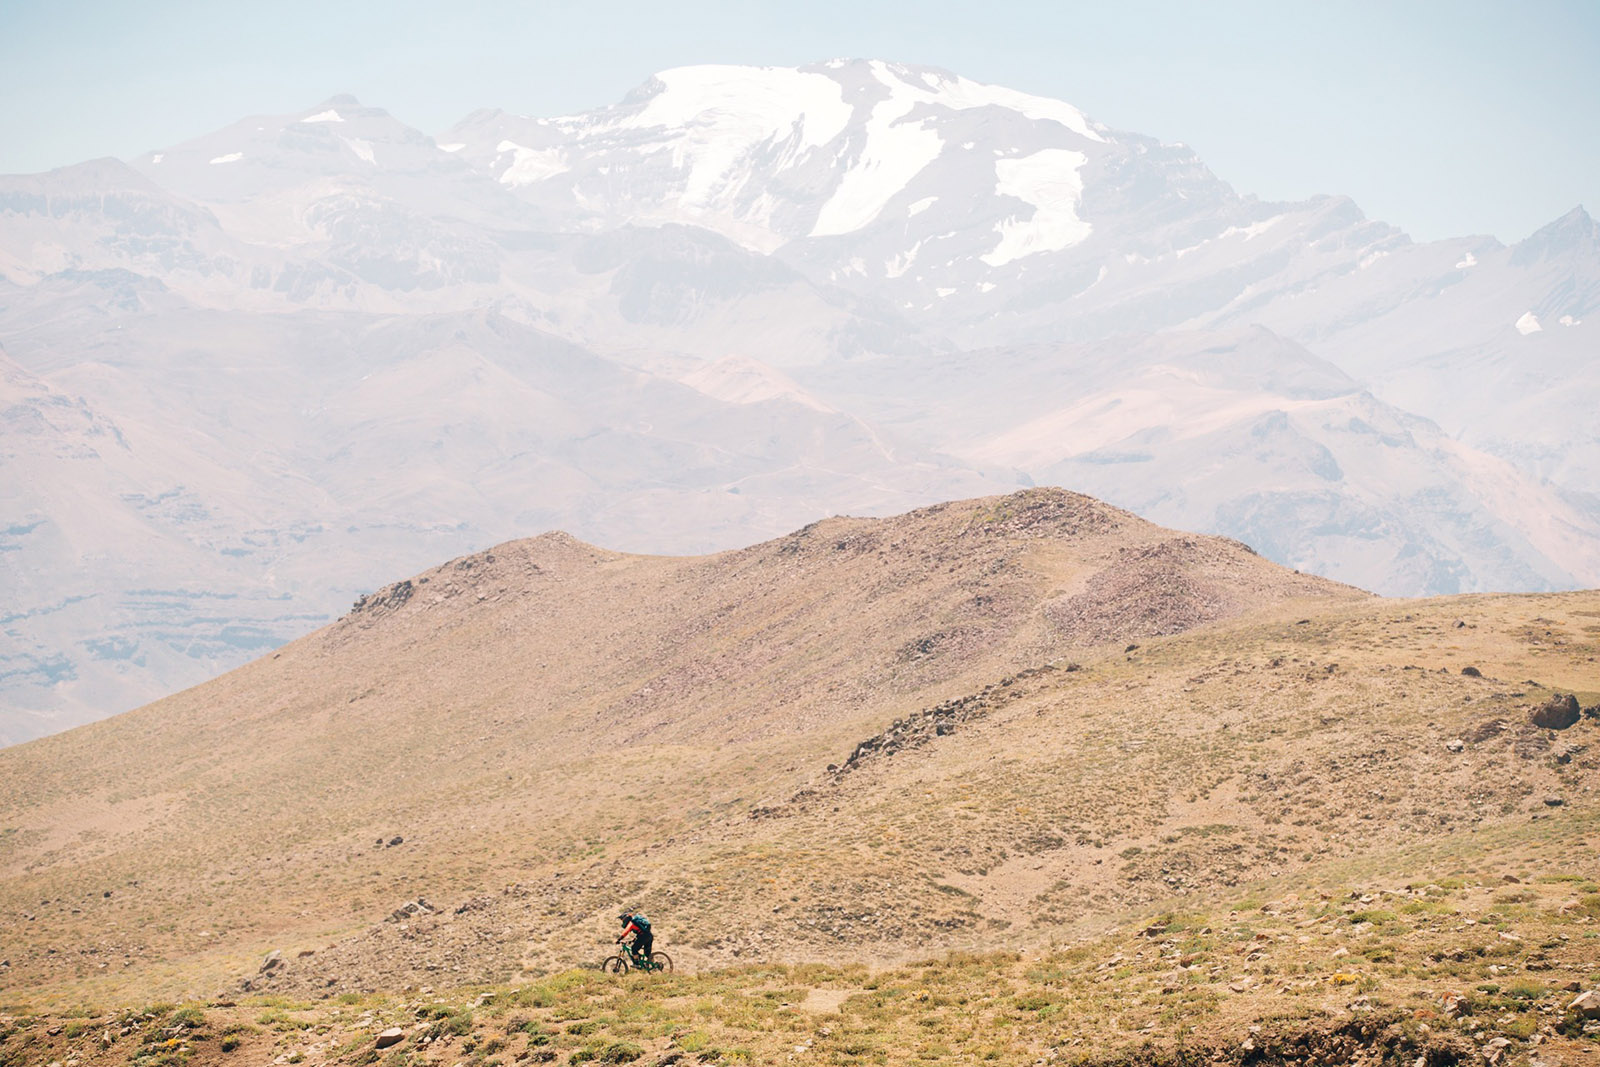 Juliana Bicycles - Jaime Hill Against the Mountains in Chile at the 2018 Andes Pacifico Enduro Race